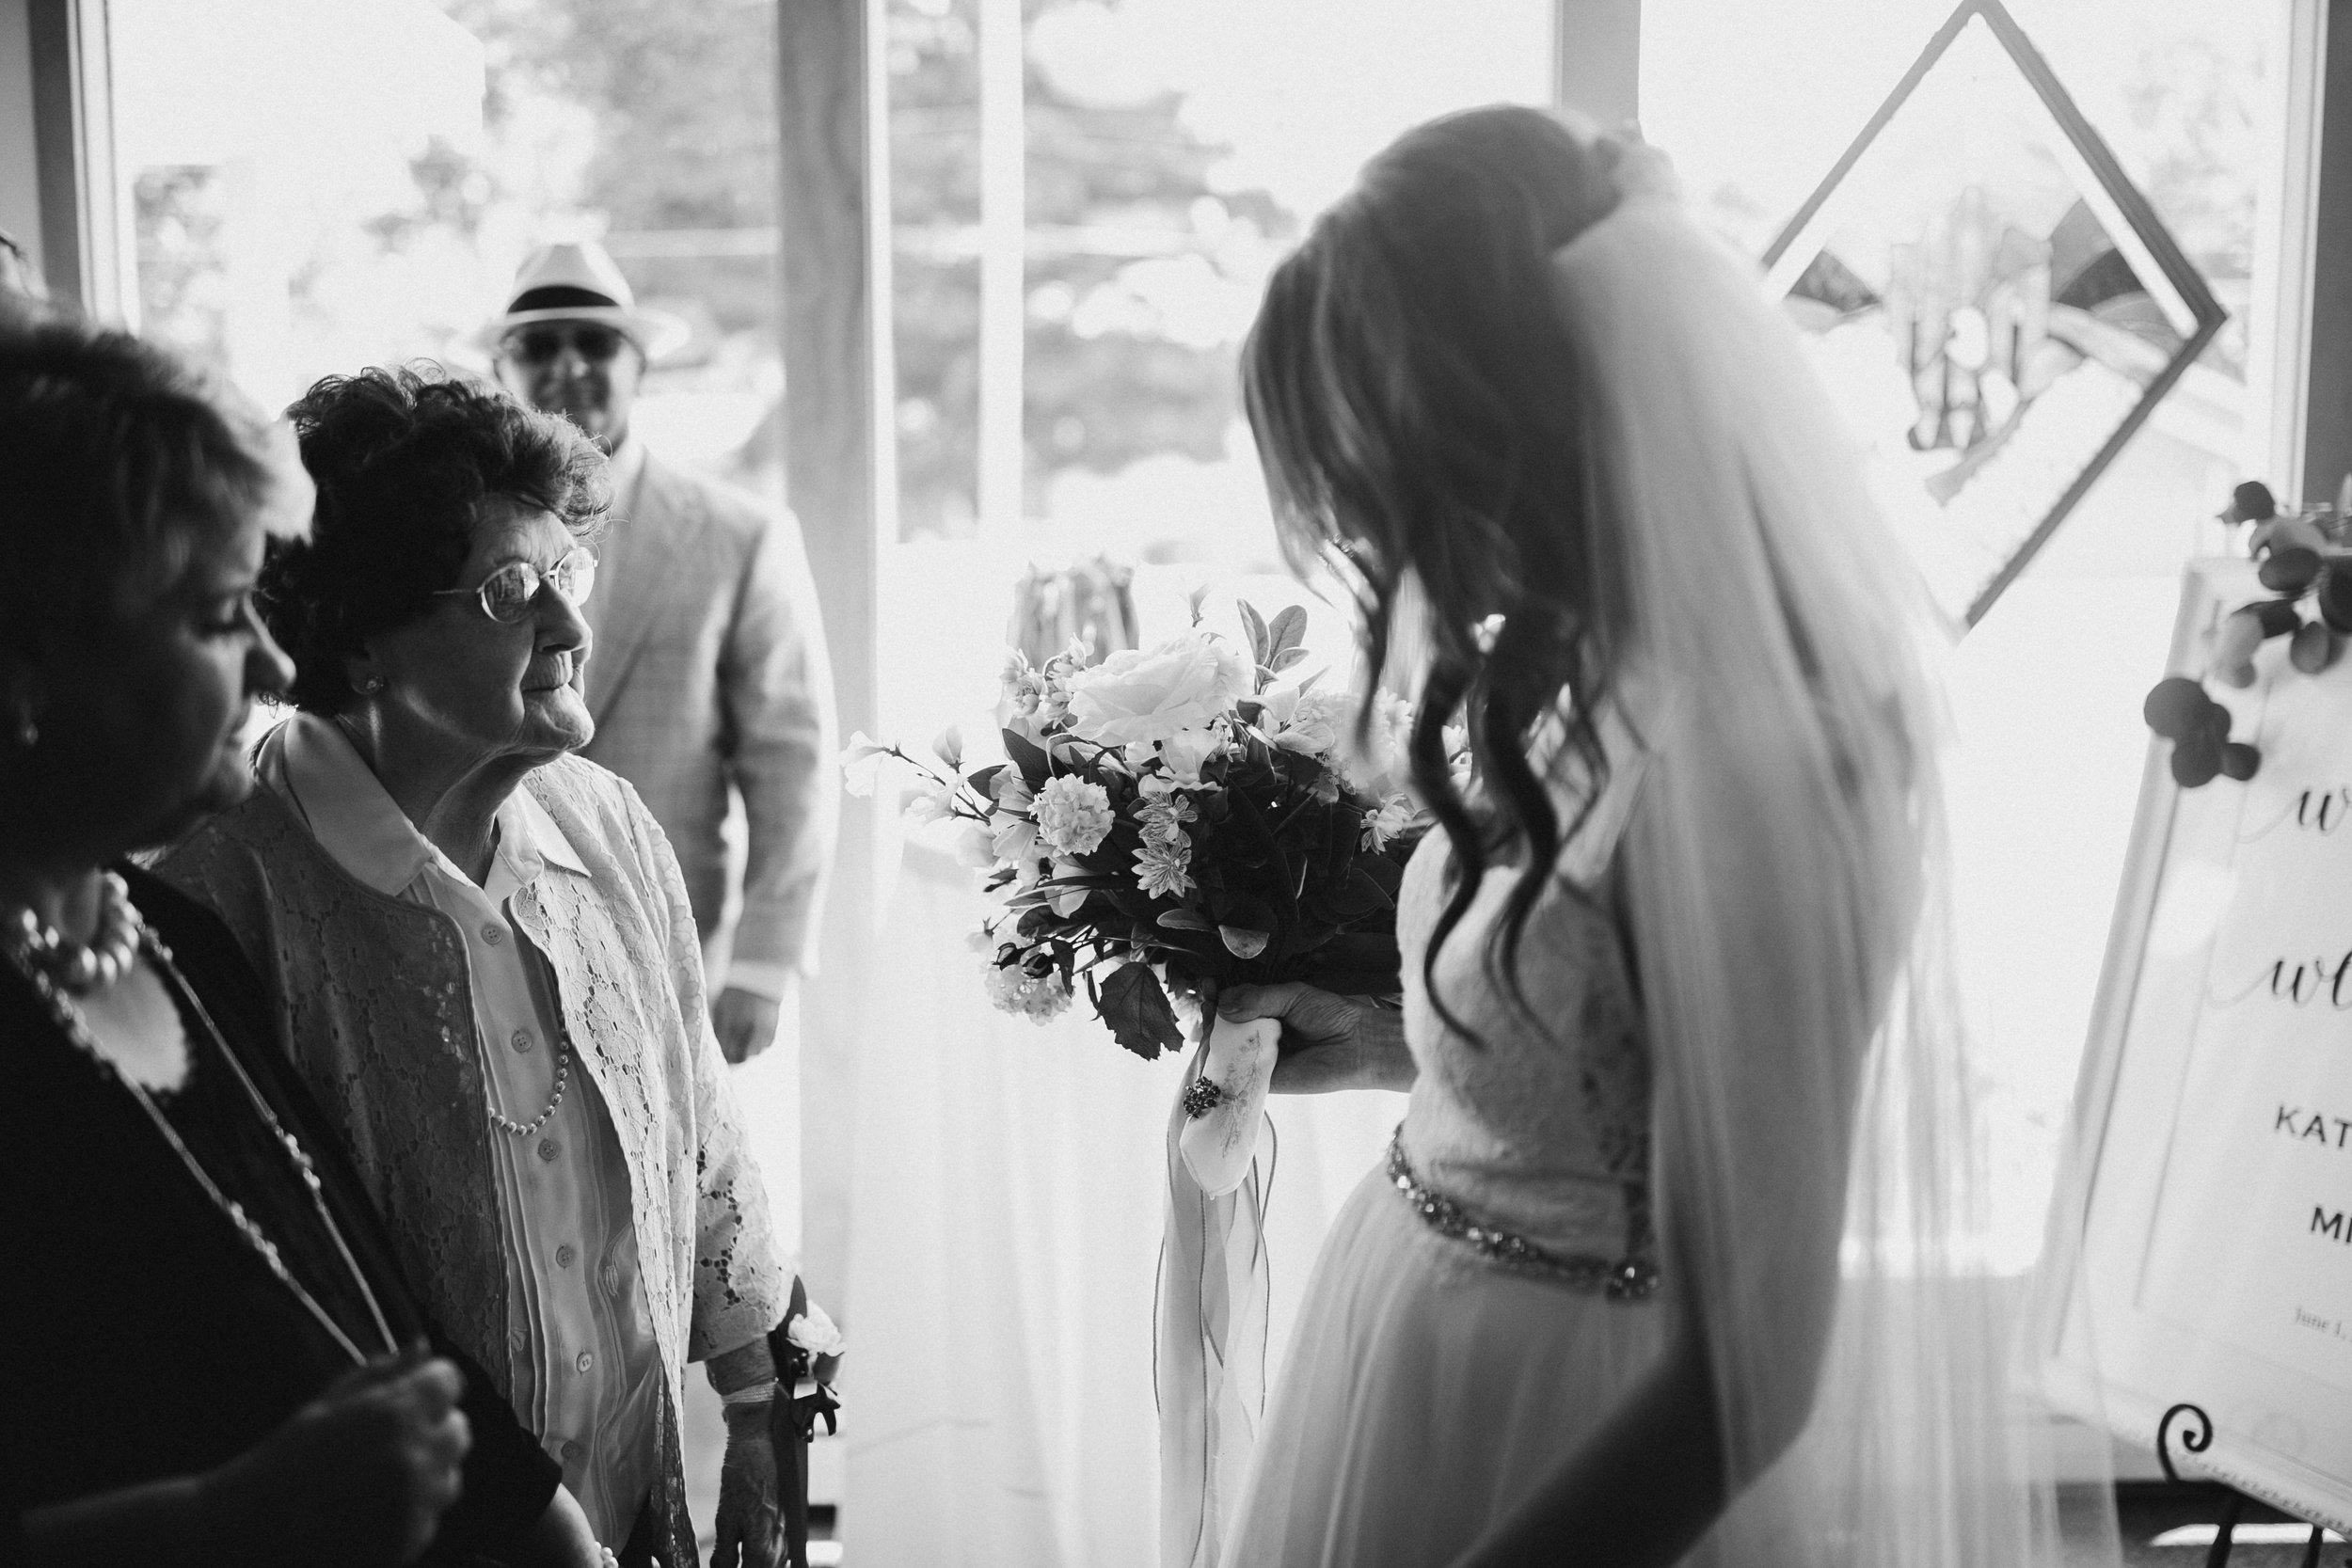 2018-6-Katarina-Mike-Ceremony-Holland-Wedding-Michigan-Wedding-Photographer-30.jpg